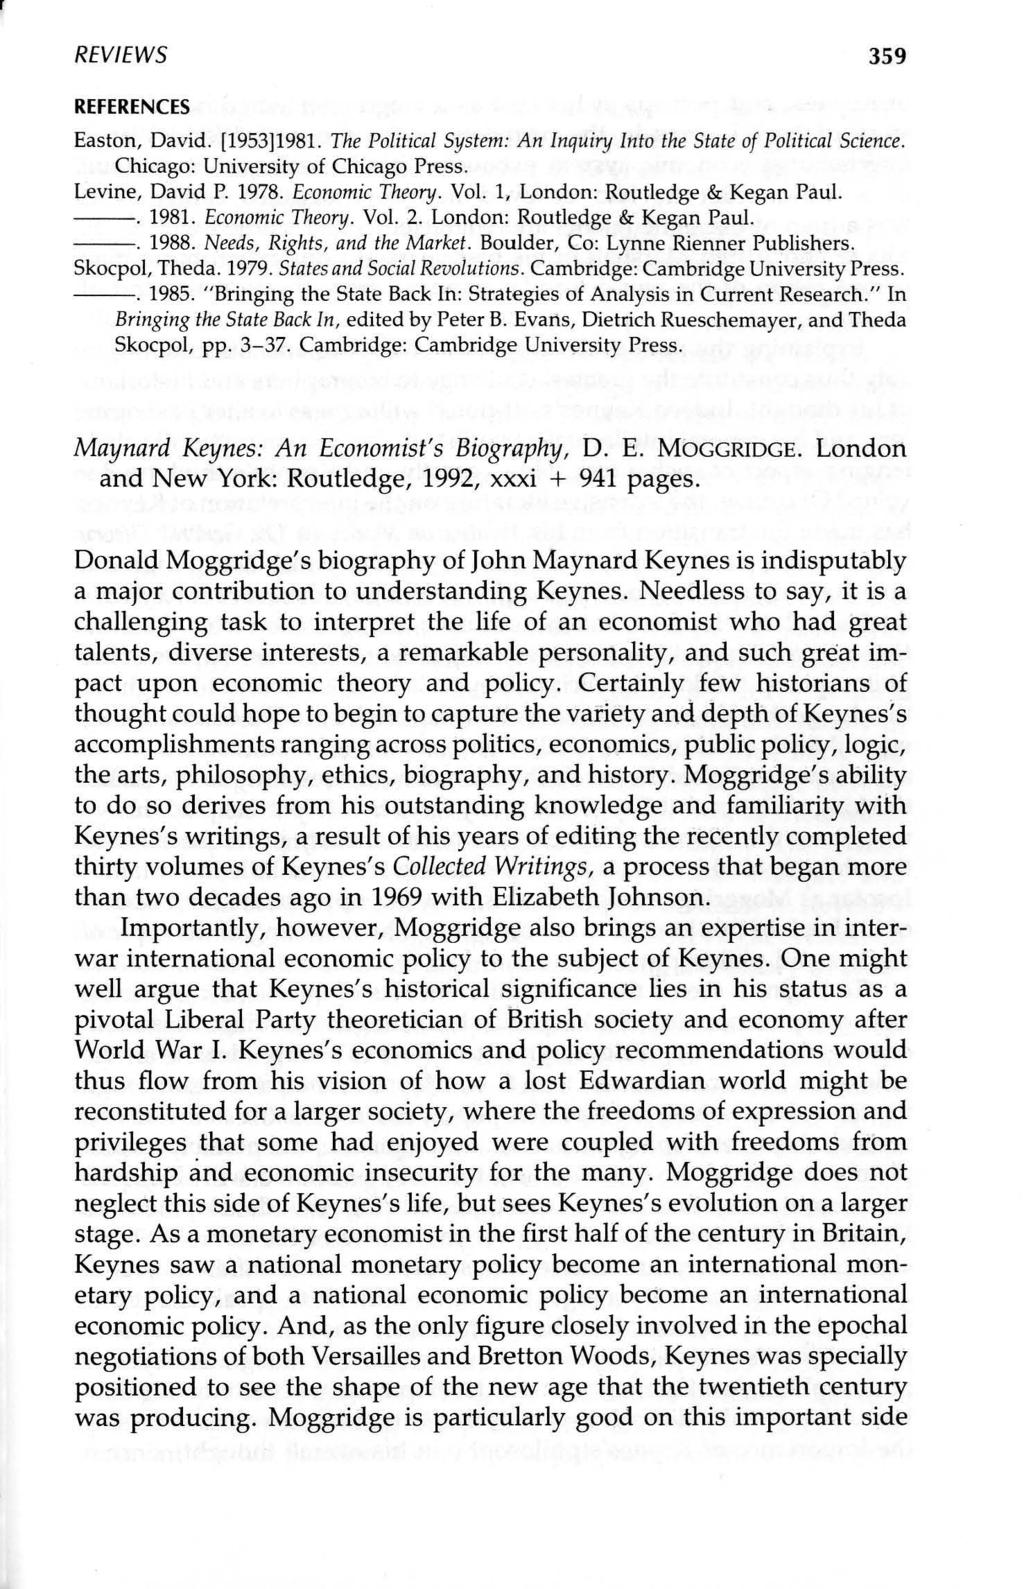 REVIEWS 359 REFERENCES Easton, David. [1953J1981. The Political System: An Inquiry Into the State of Political Science. Chicago: University of Chicago Press. Levine, David P. 1978. Economic Theory.